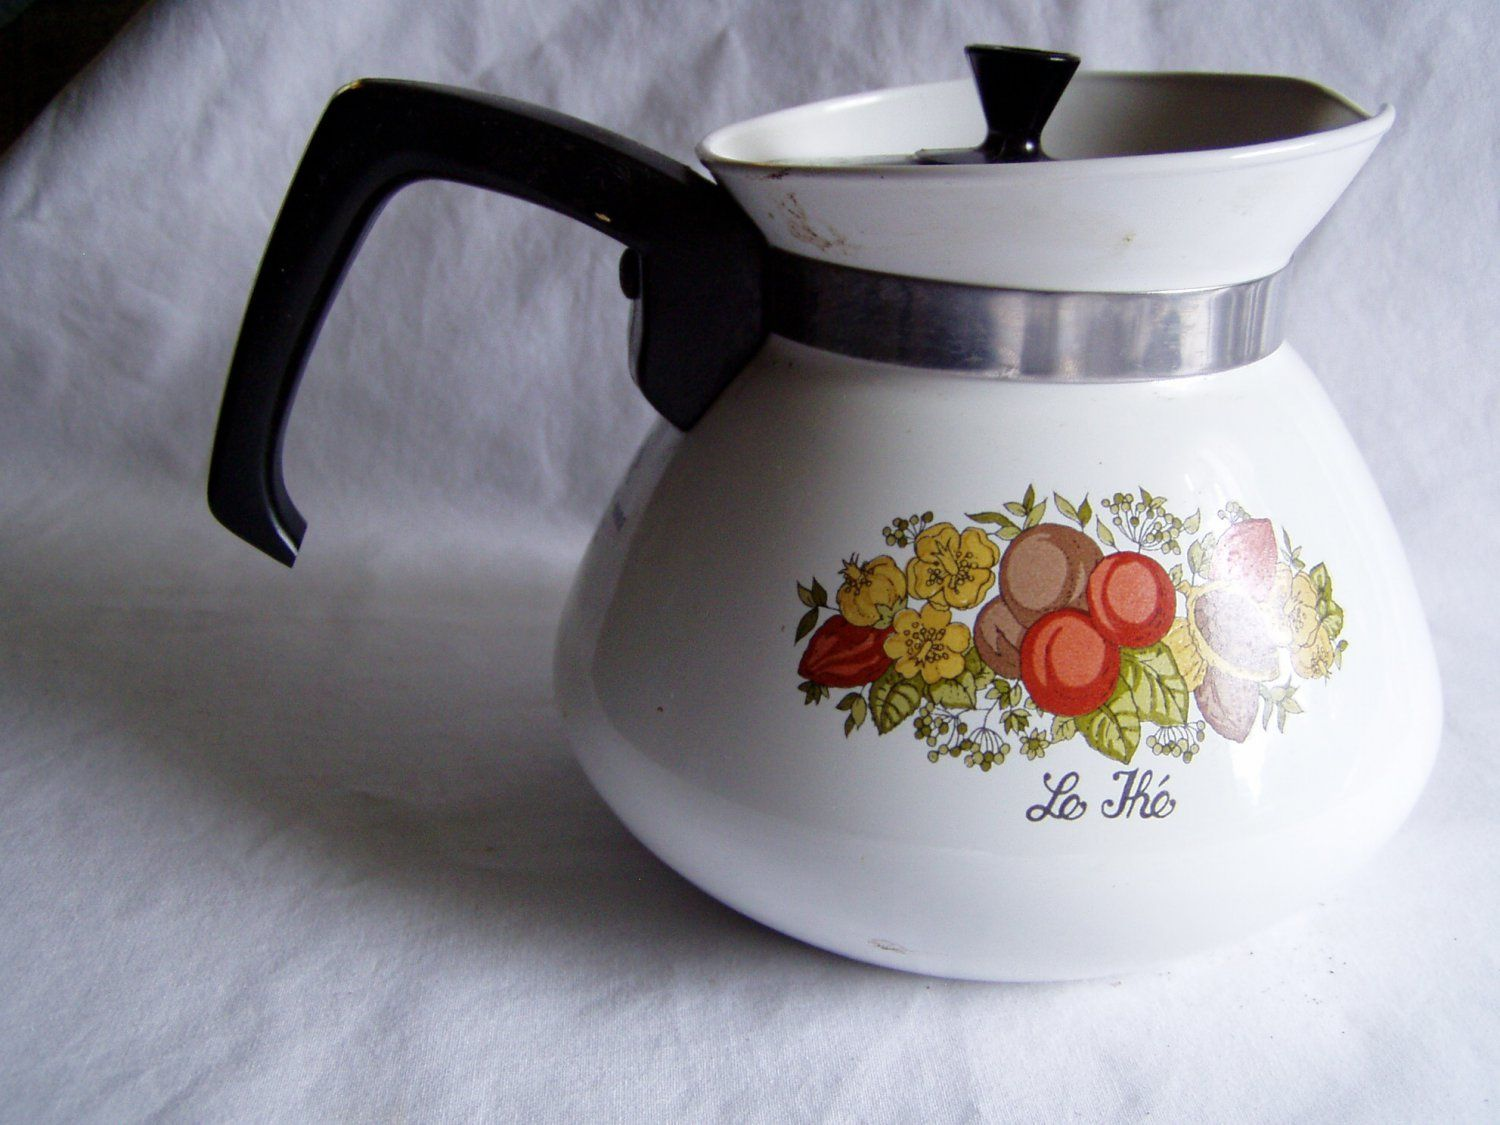 "Vintage Corning Ware Spice of Life Coffee/Tea Pot 6 Cup ""Le The"" P-104 - for sale at Wenzel Thrifty Nickel ecrater store"